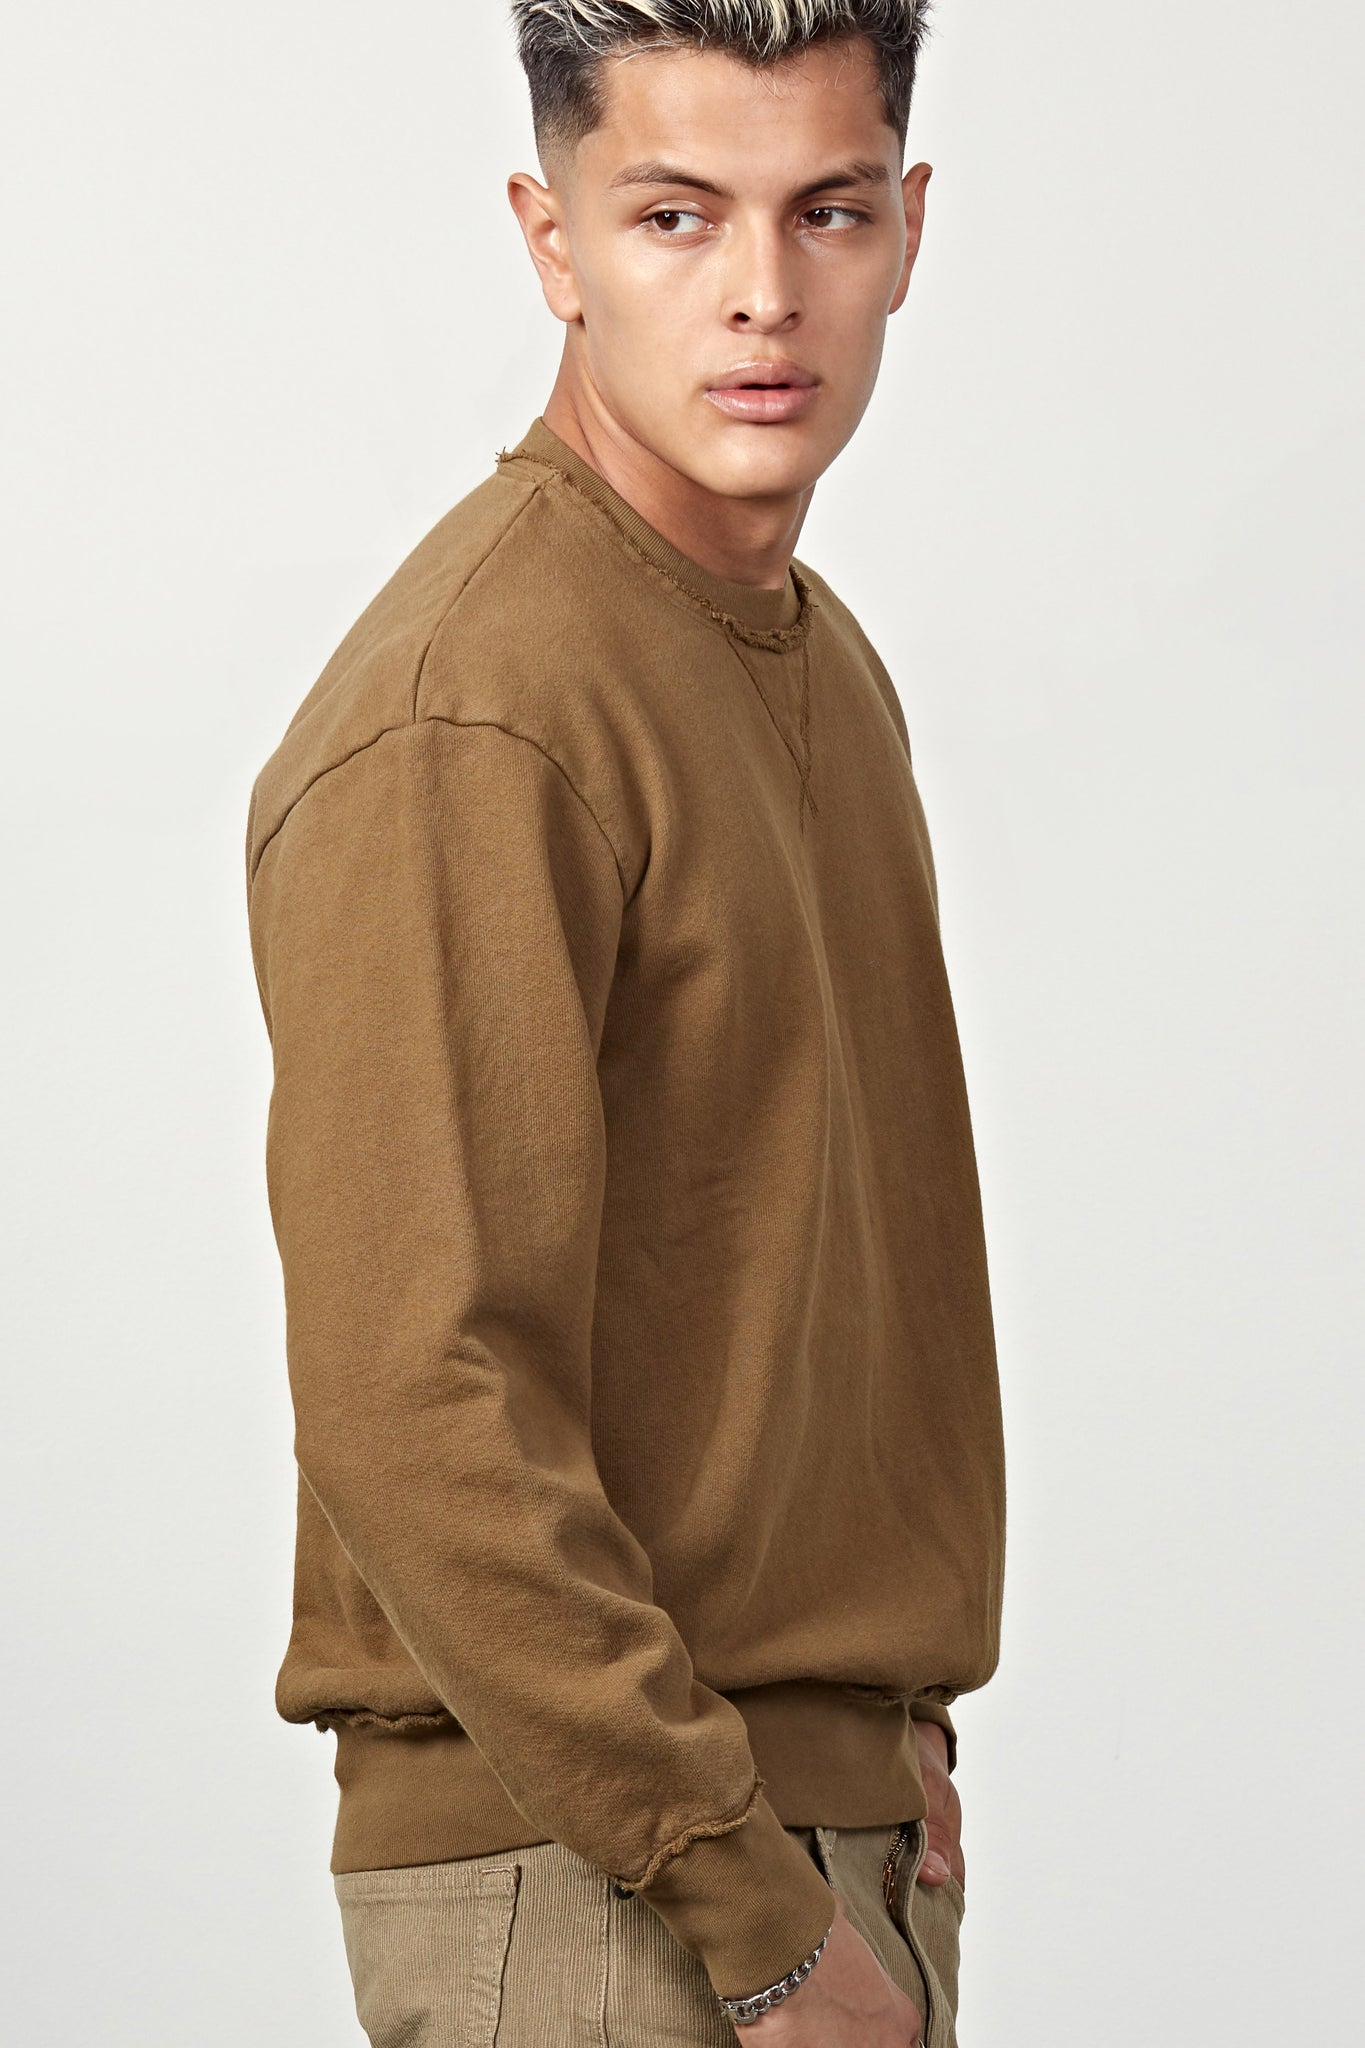 Mercy & Loyal Westside Sweatshirt - Olive